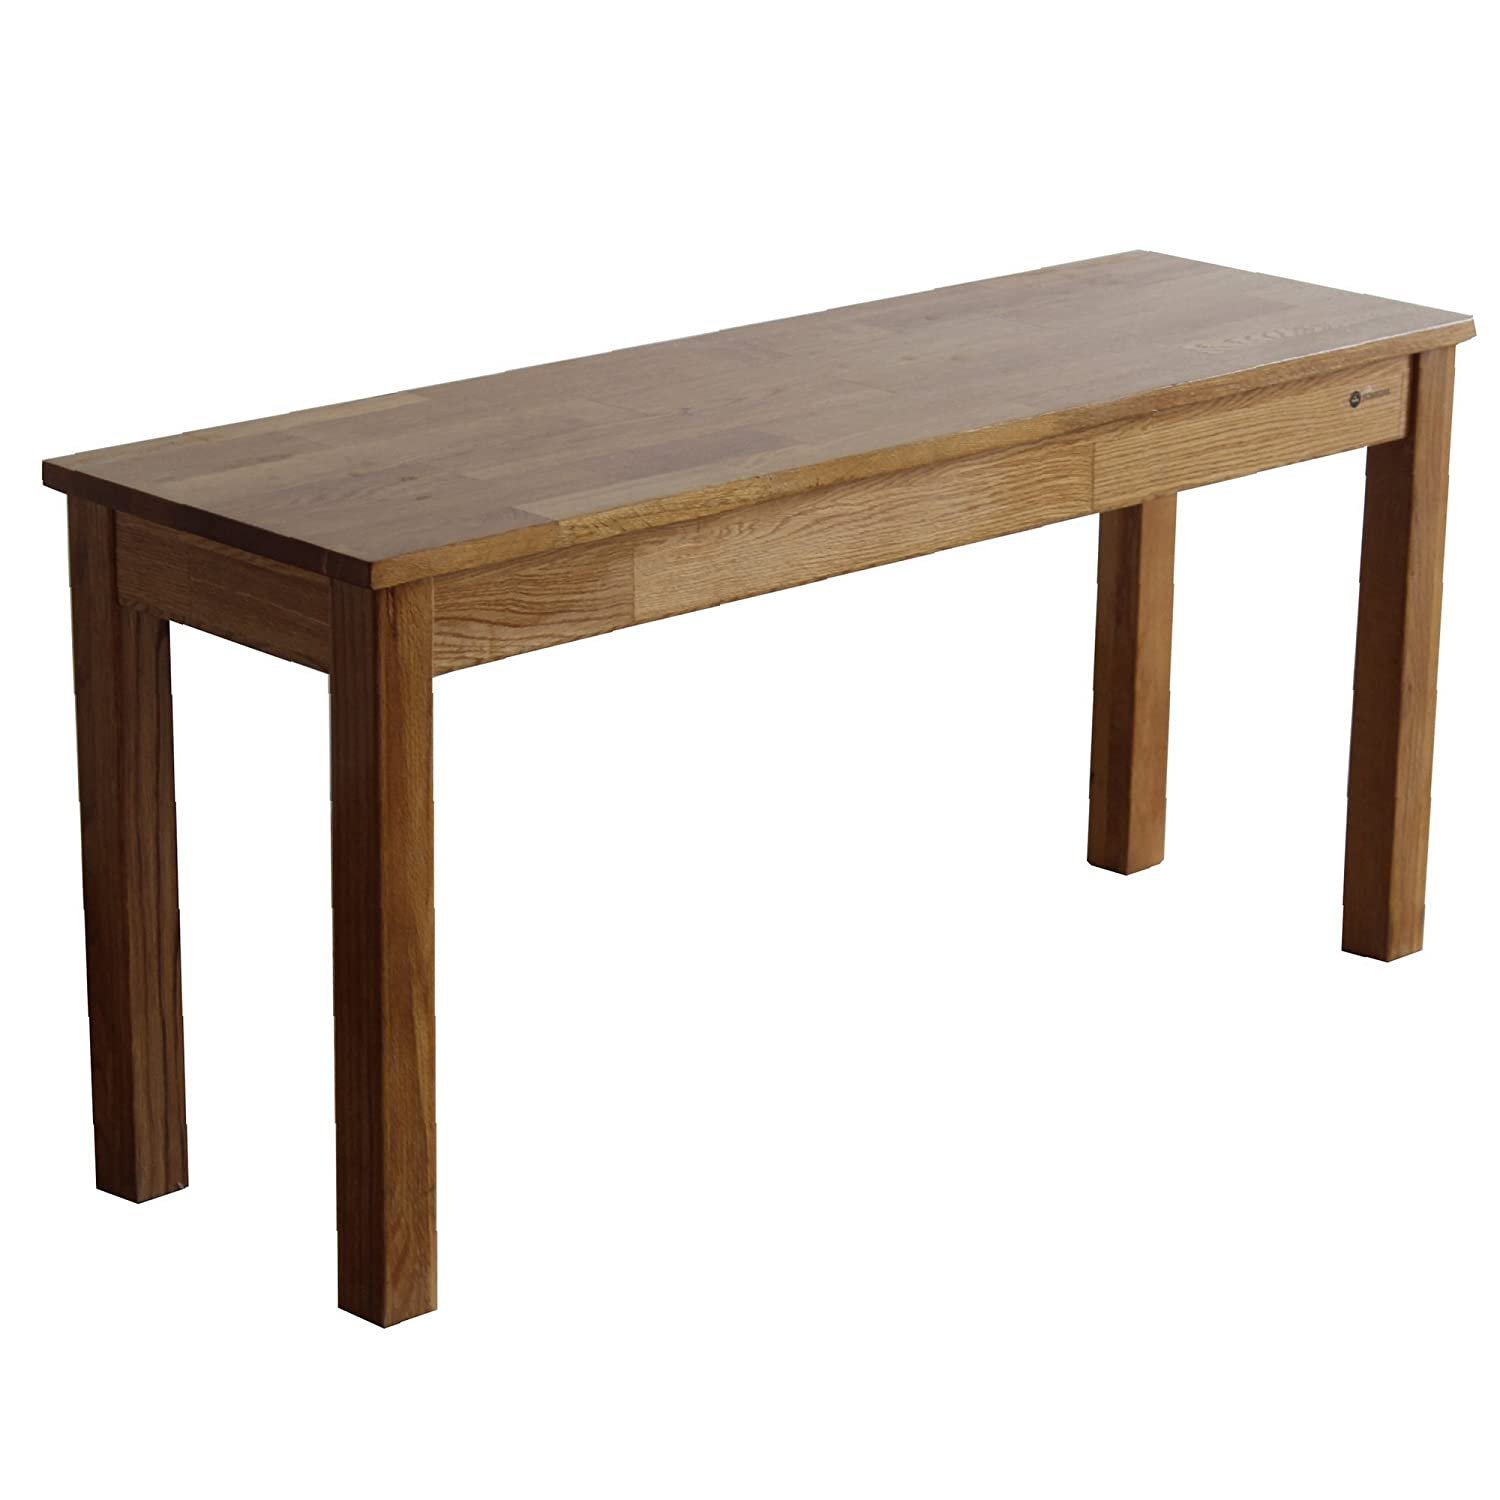 Homegear Solid Oak Wooden Dining Bench/Seat